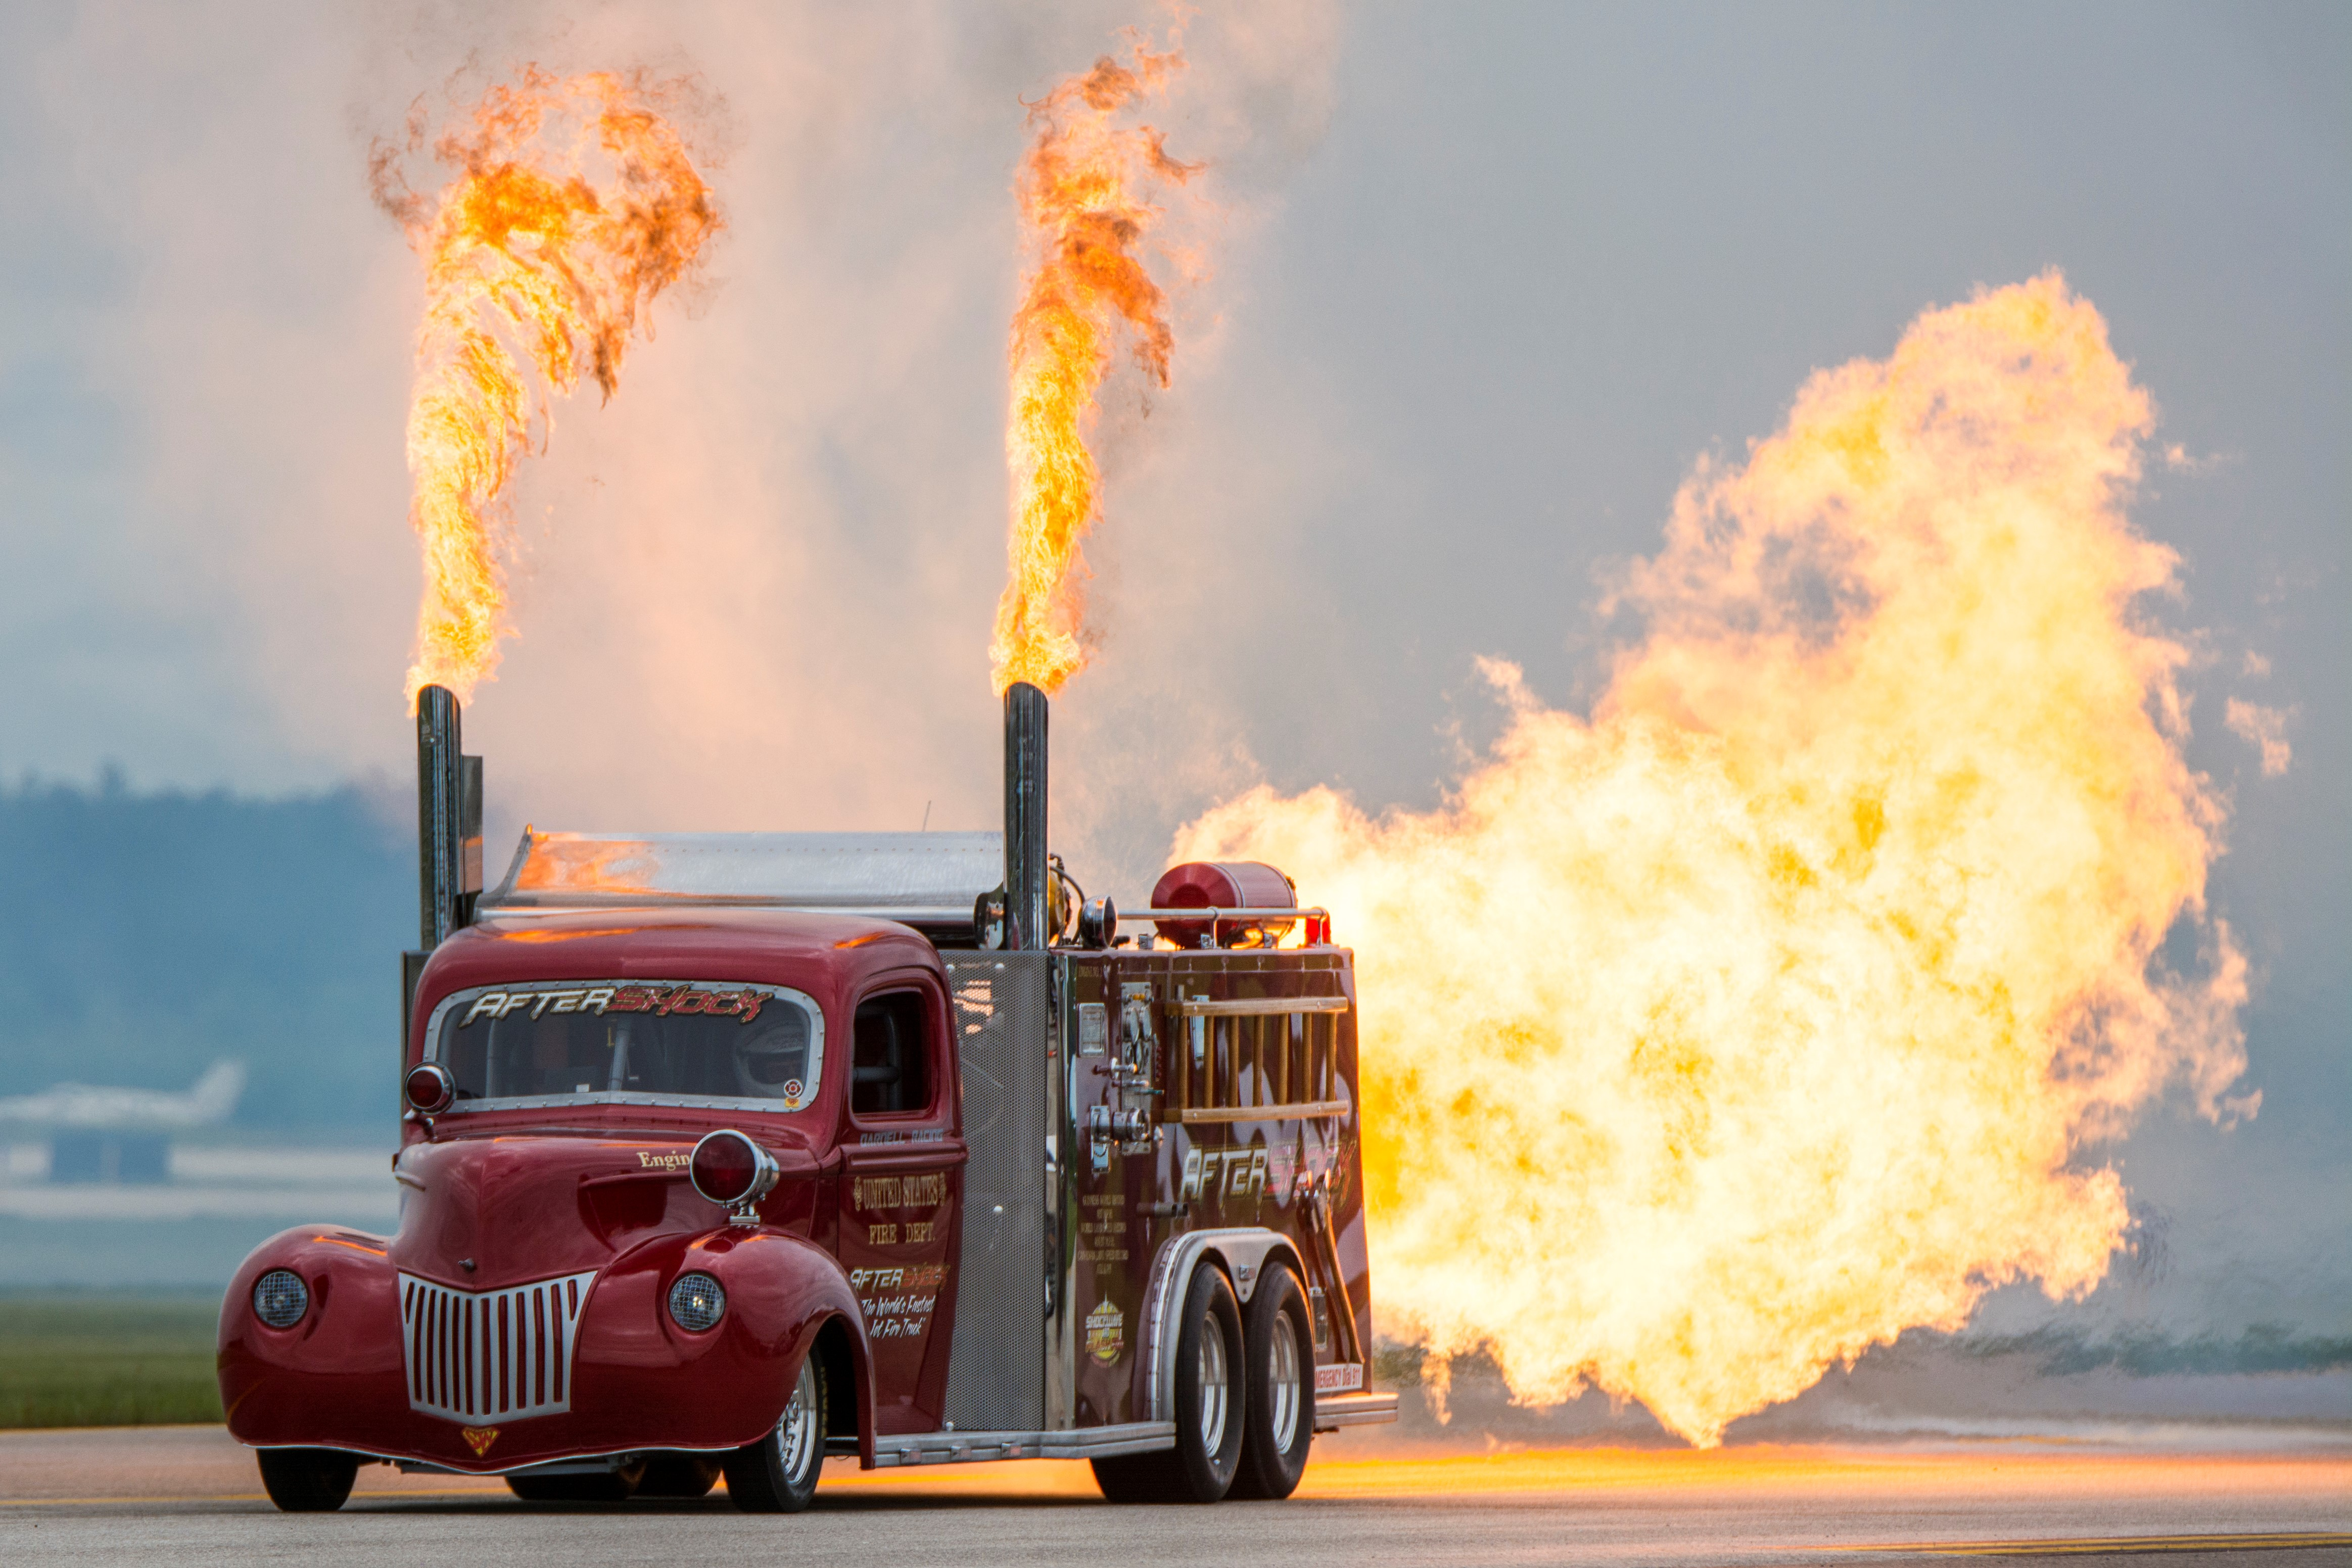 SHOCKWAVE and Flash Fire Jet Trucks - Media Relations